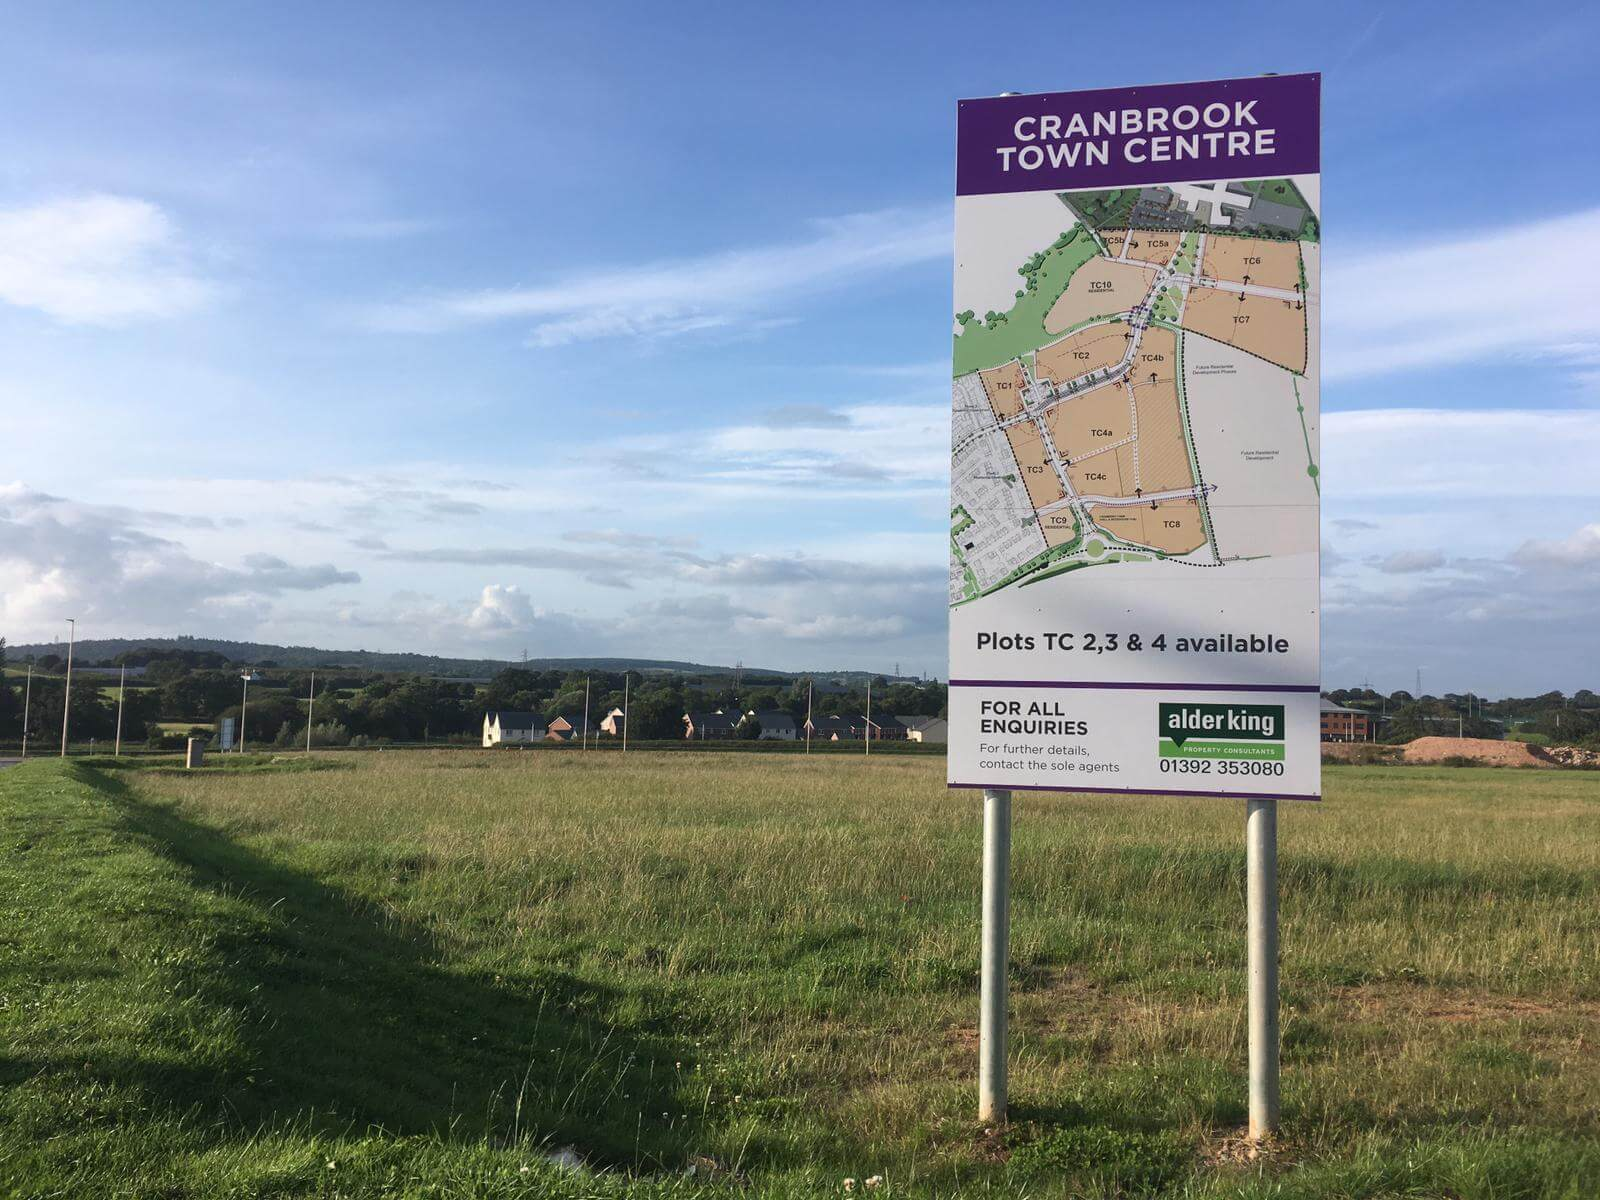 The land earmarked for the town centre in Cranbrook.